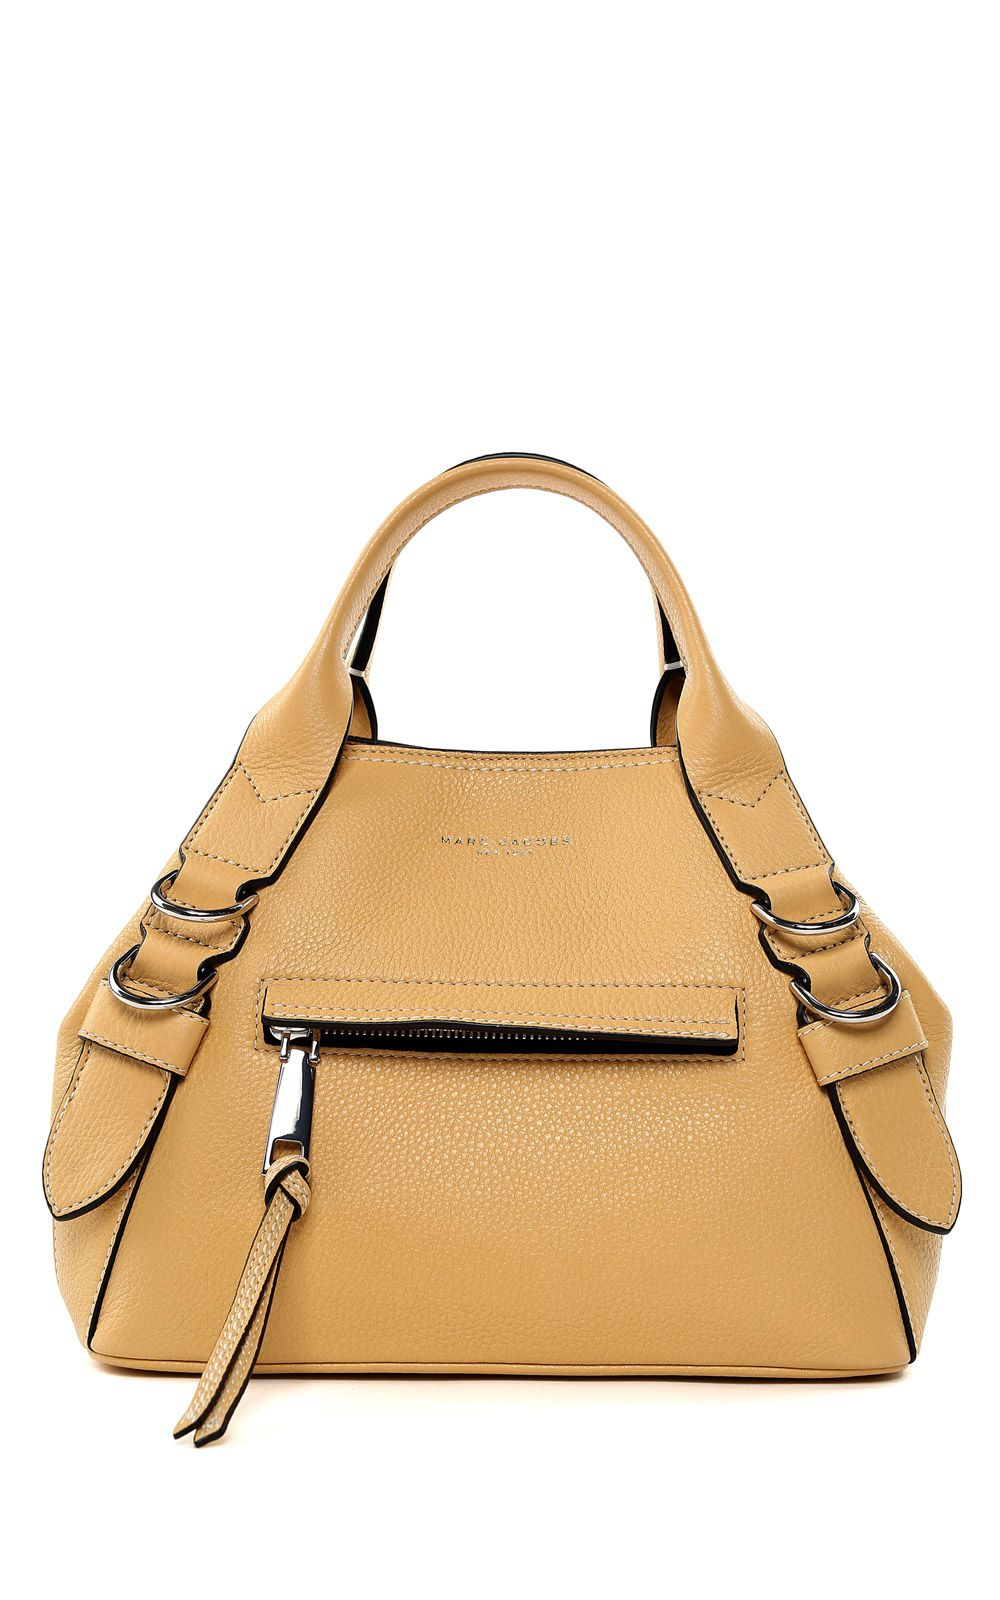 marc jacobs female marc jacobs the mini anchor pebbledleather shopping bag